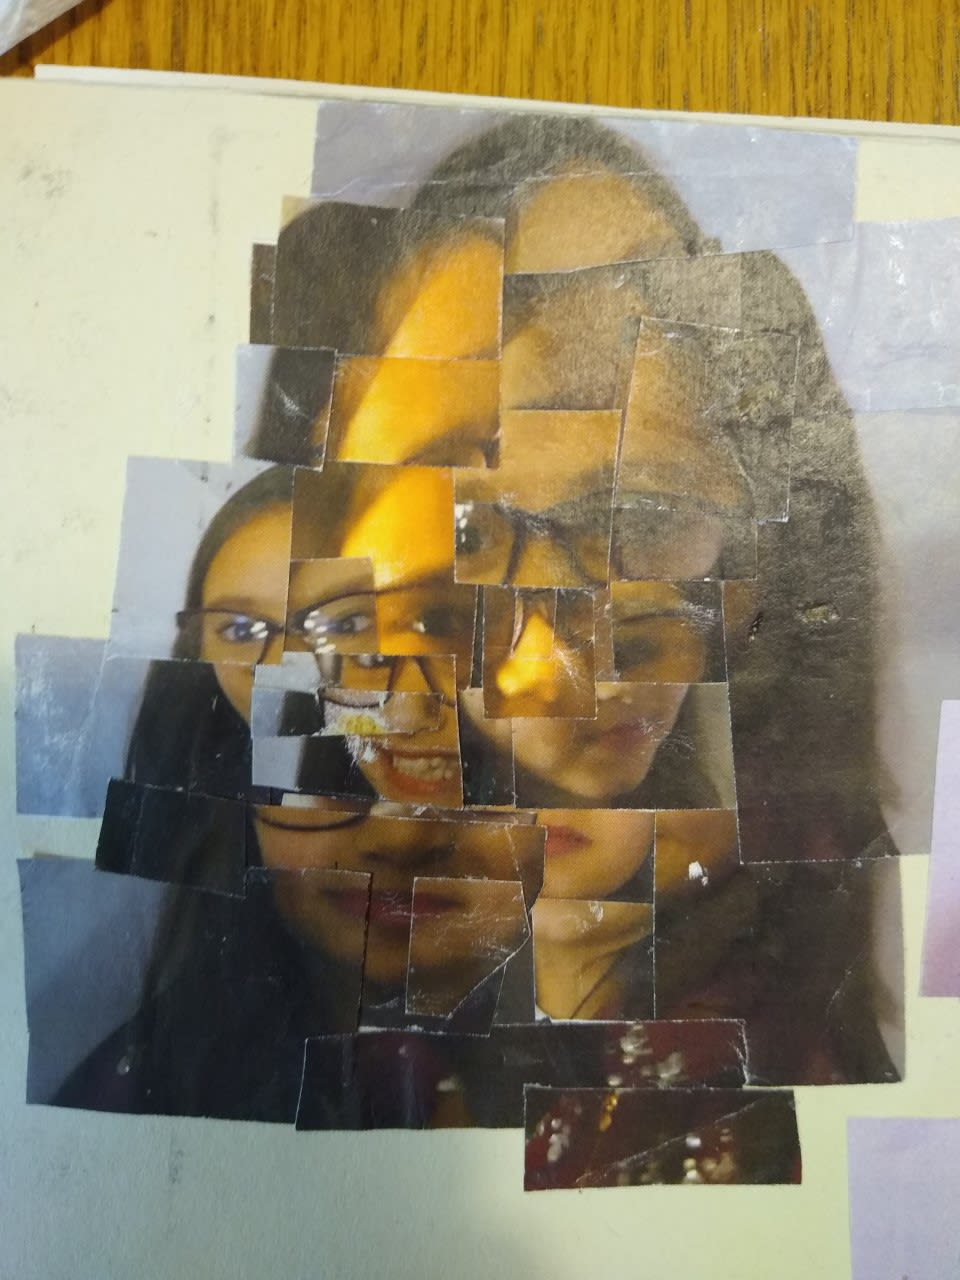 Photo montage of my sister Dylan Evenson, age 12. Inspired by David Hockney